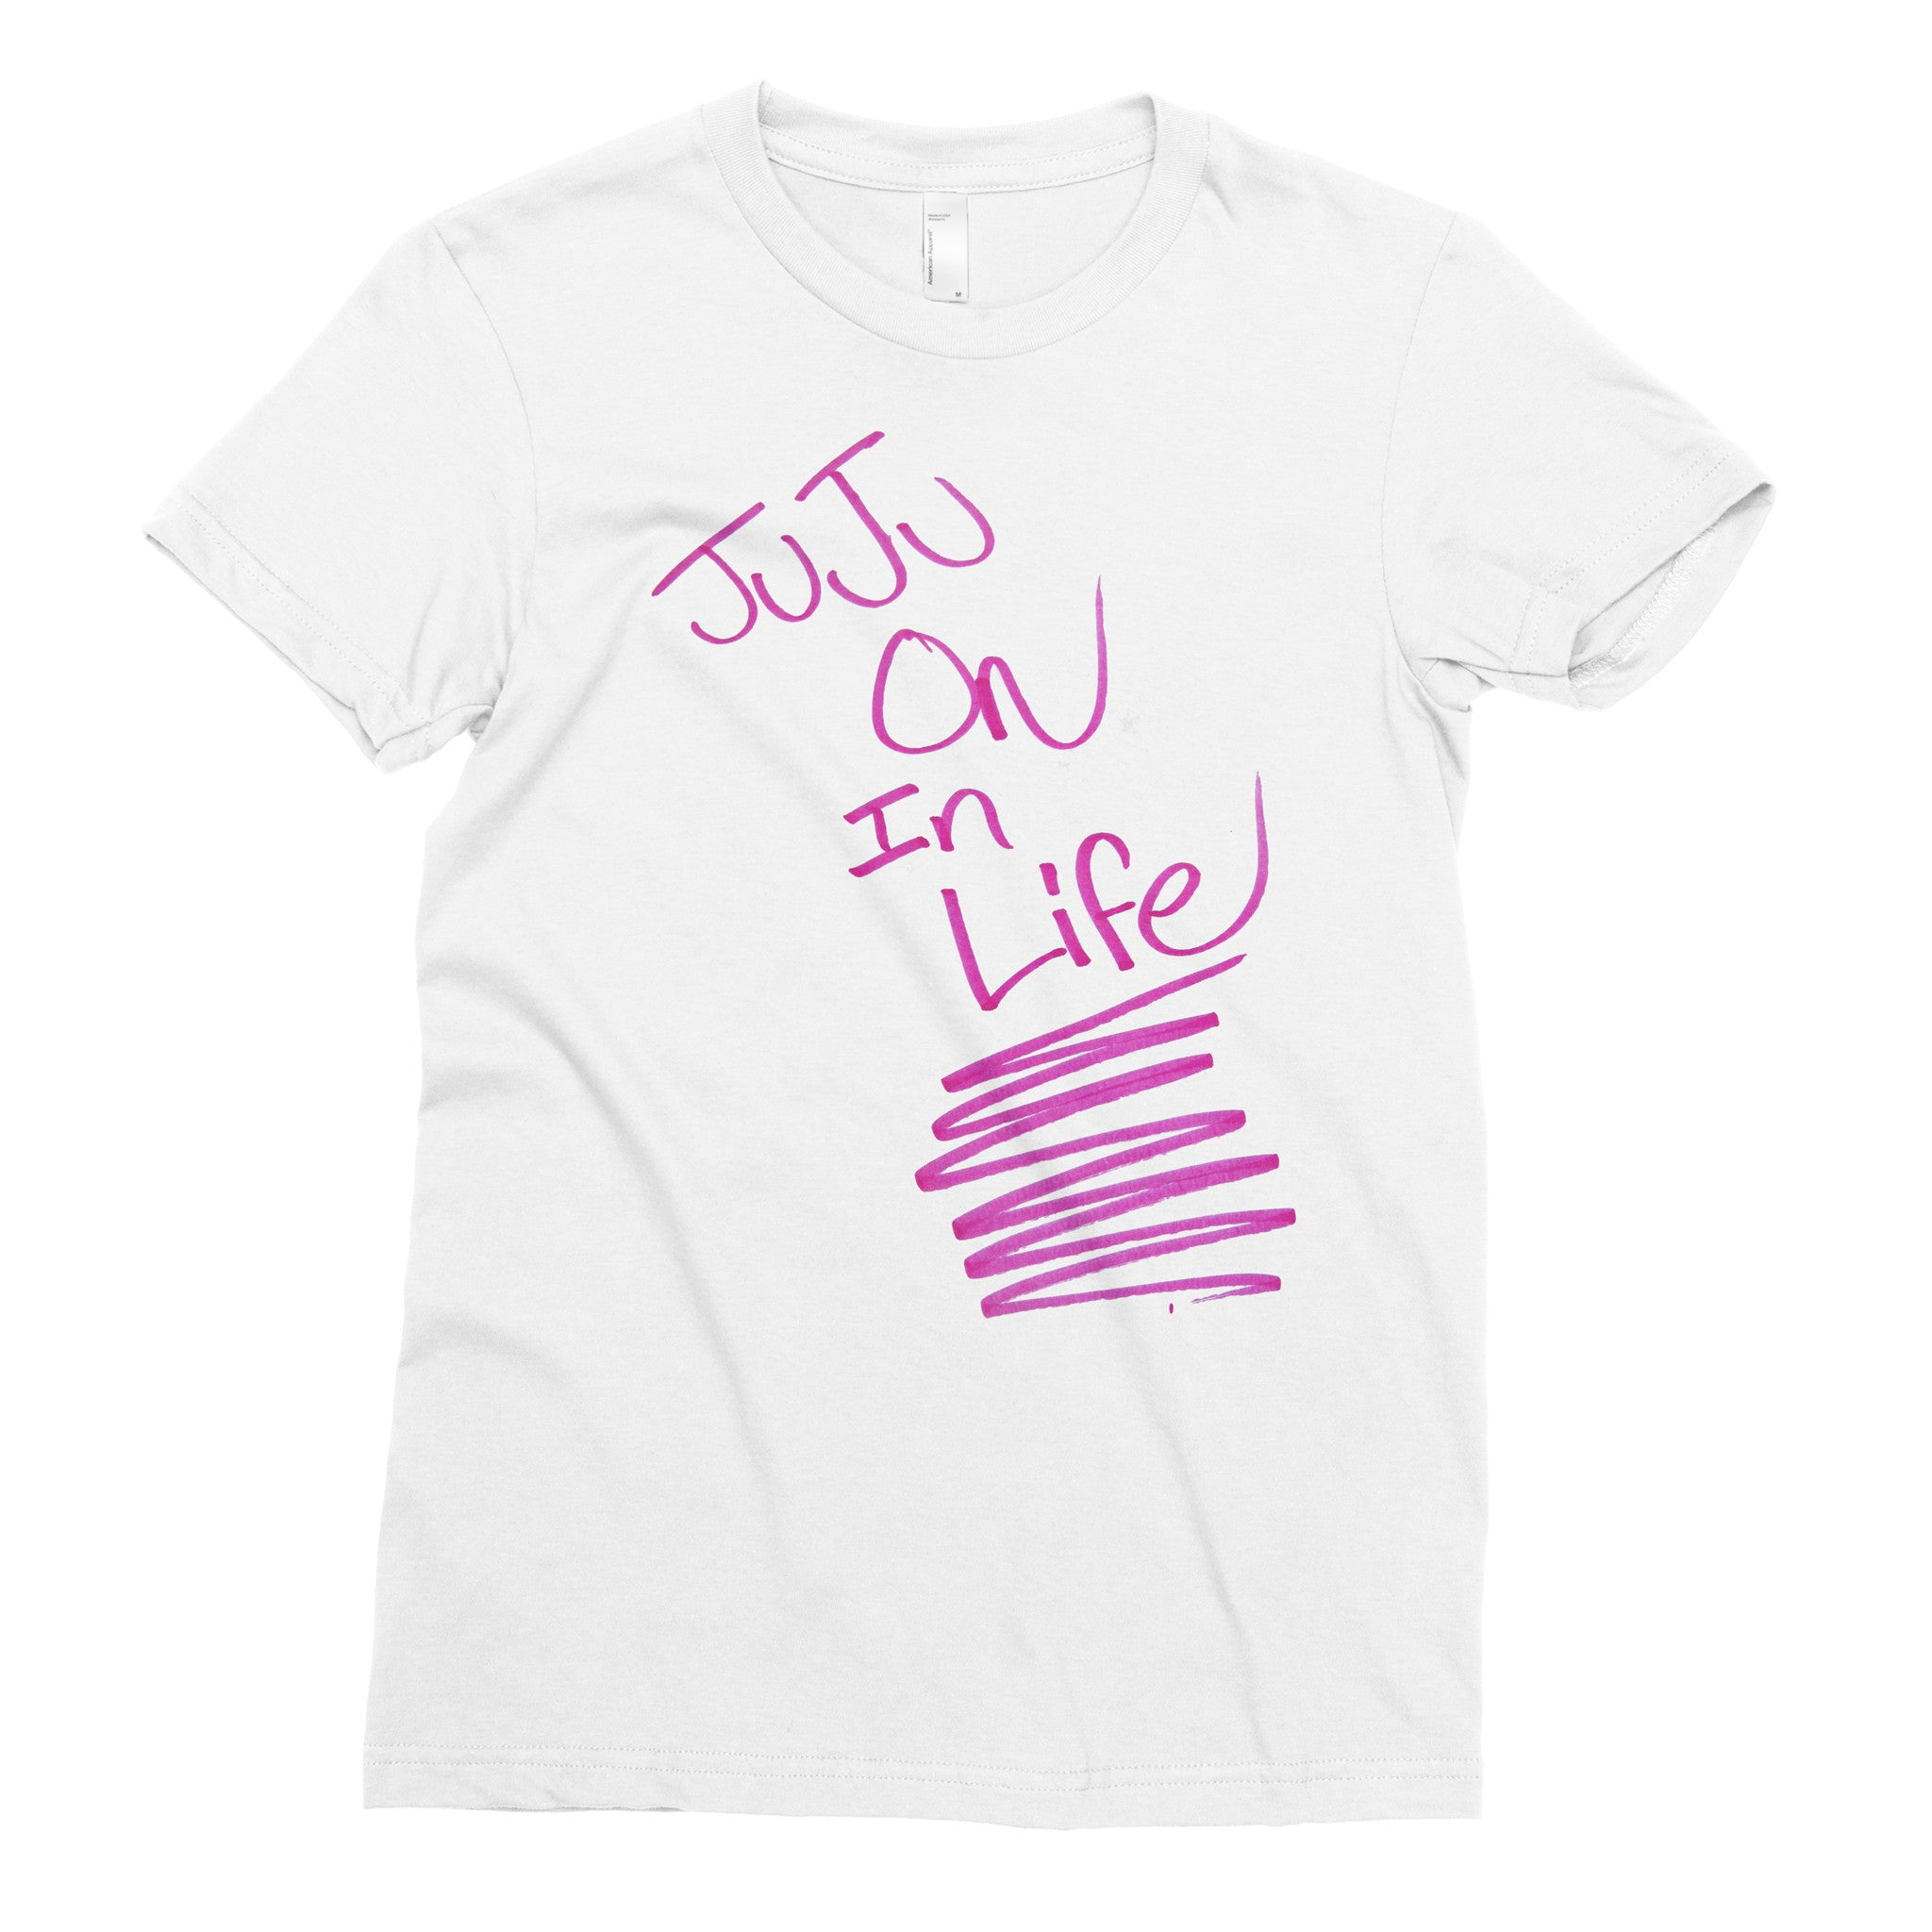 Juju On Life - Adult T-shirt - Rightside Shirts